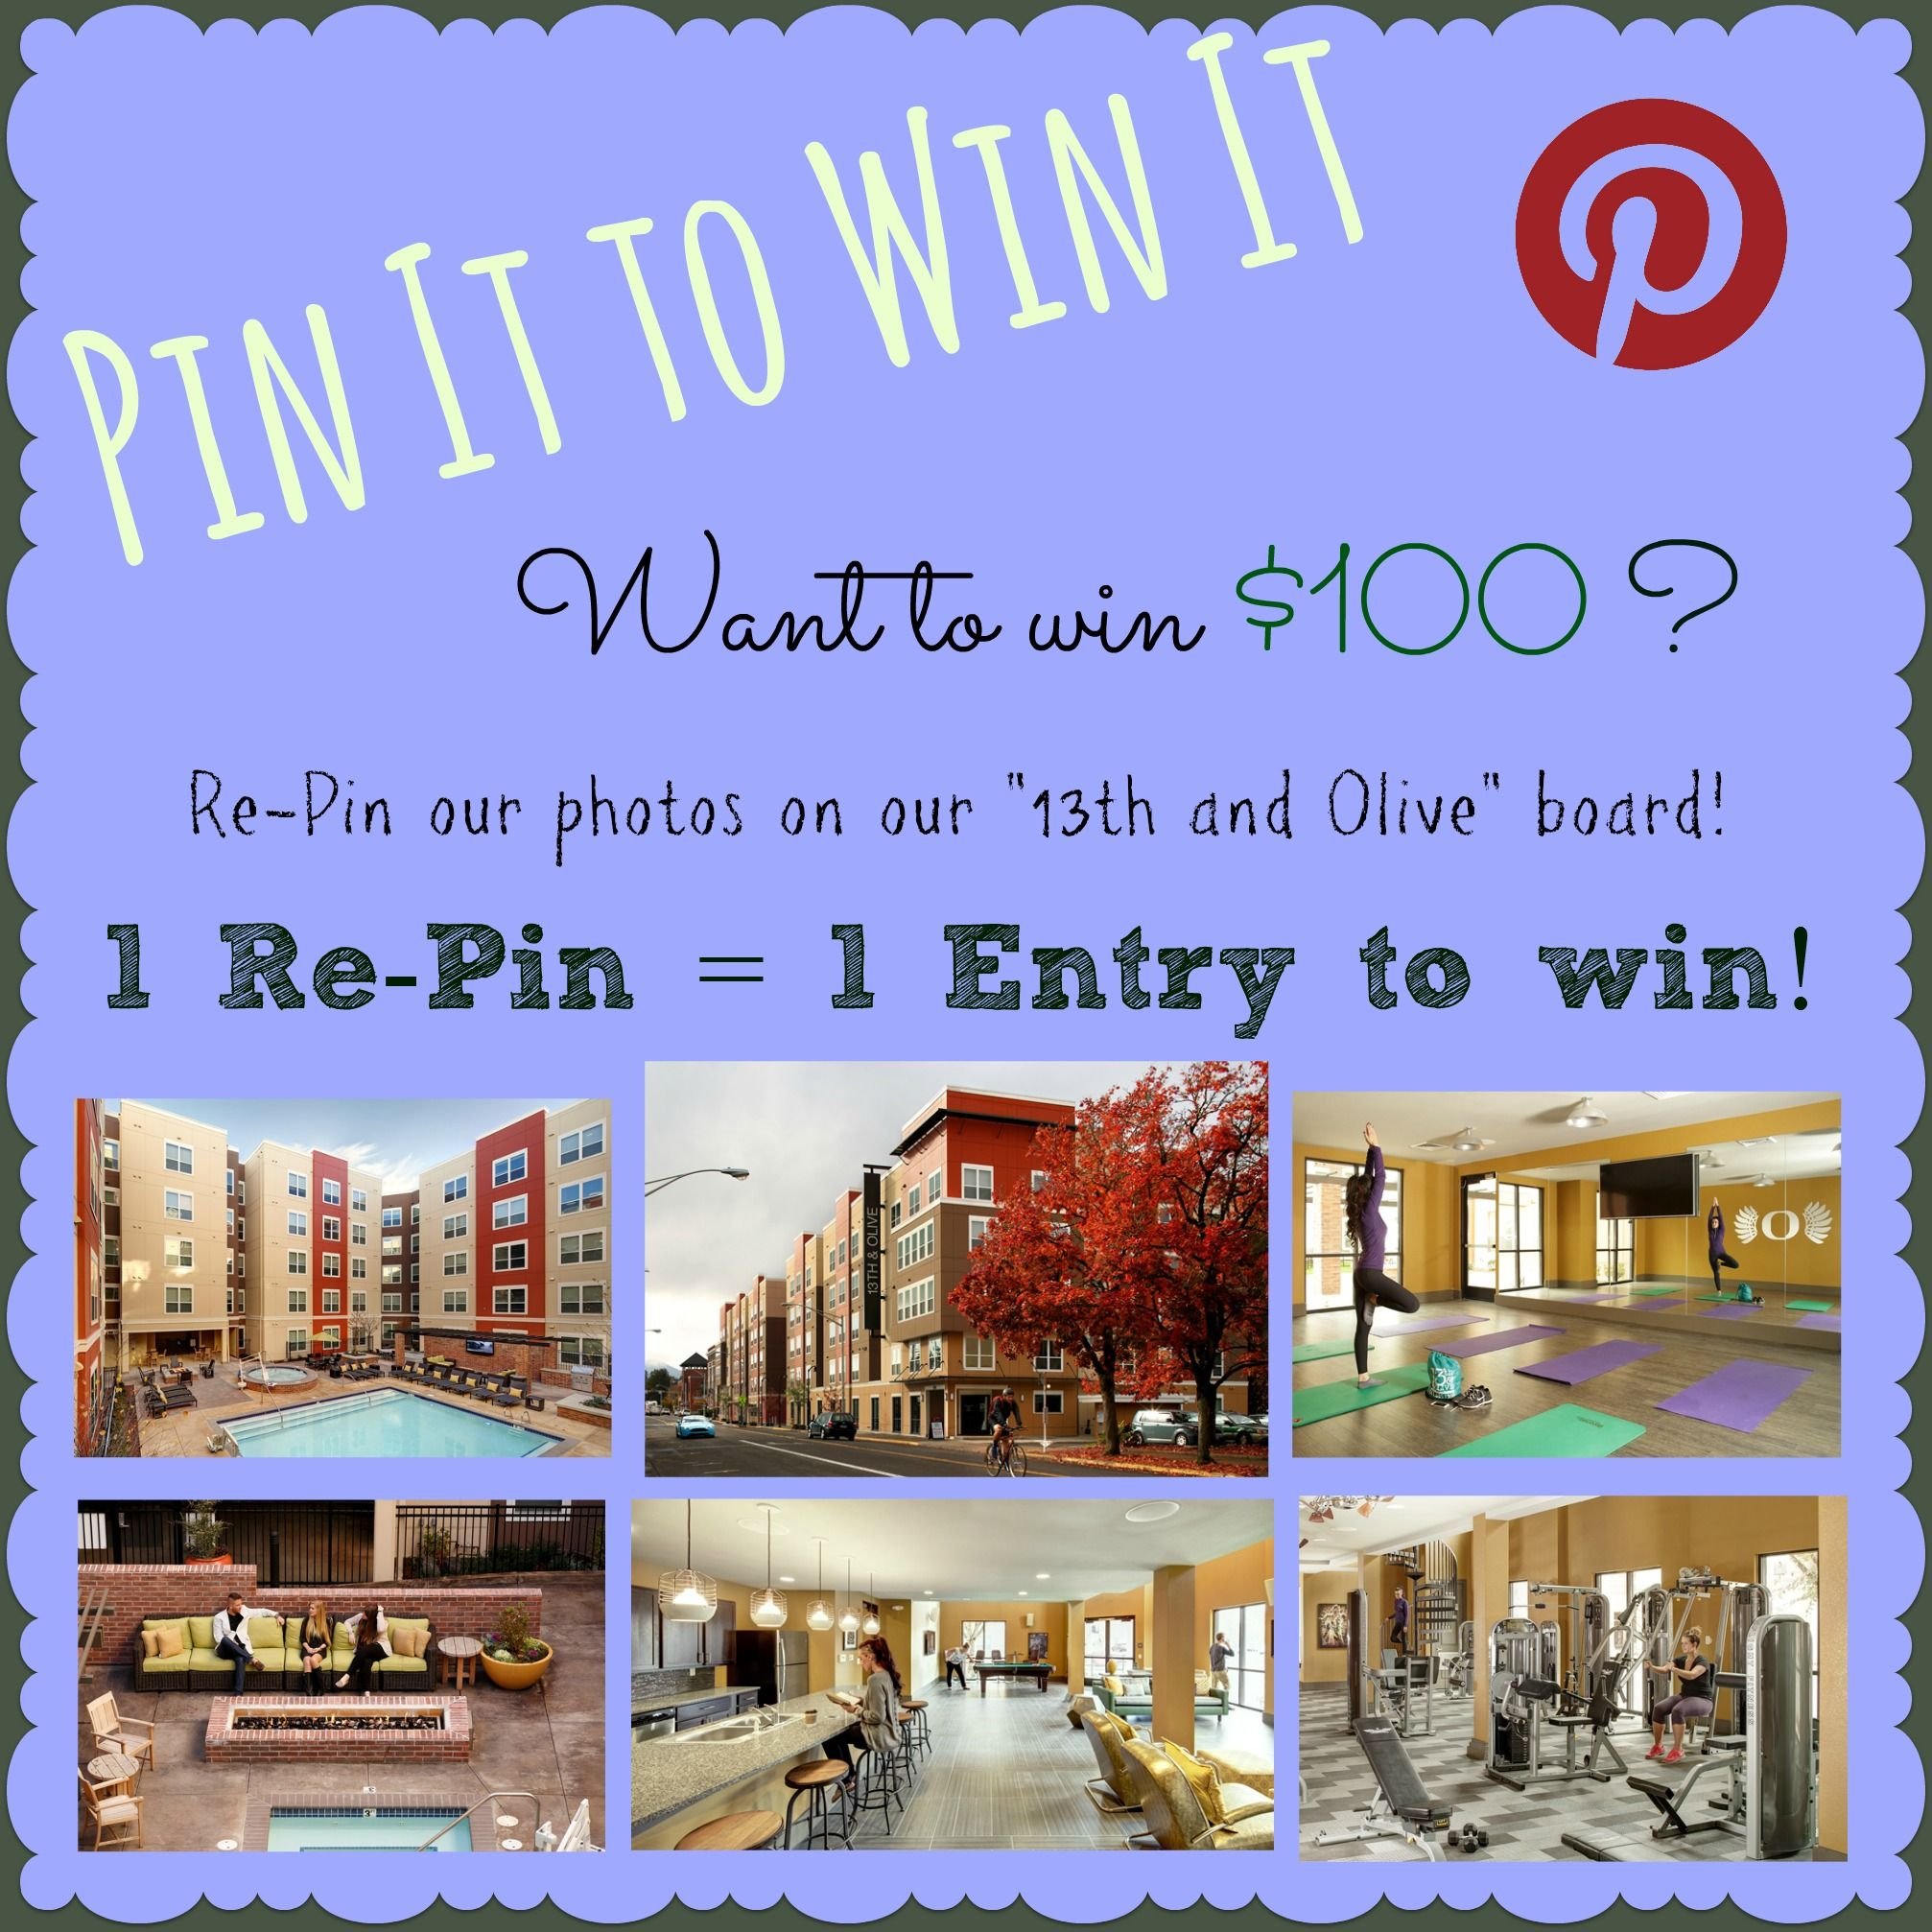 """Want to win $100? Simply Re-Pin photos from our """"13th & Olive"""" Pin Board as many times as you like... keep in mind that 1 Re-Pin = 1 entry to the contest!  Give us a call if you have any questions at 541.685.1300"""